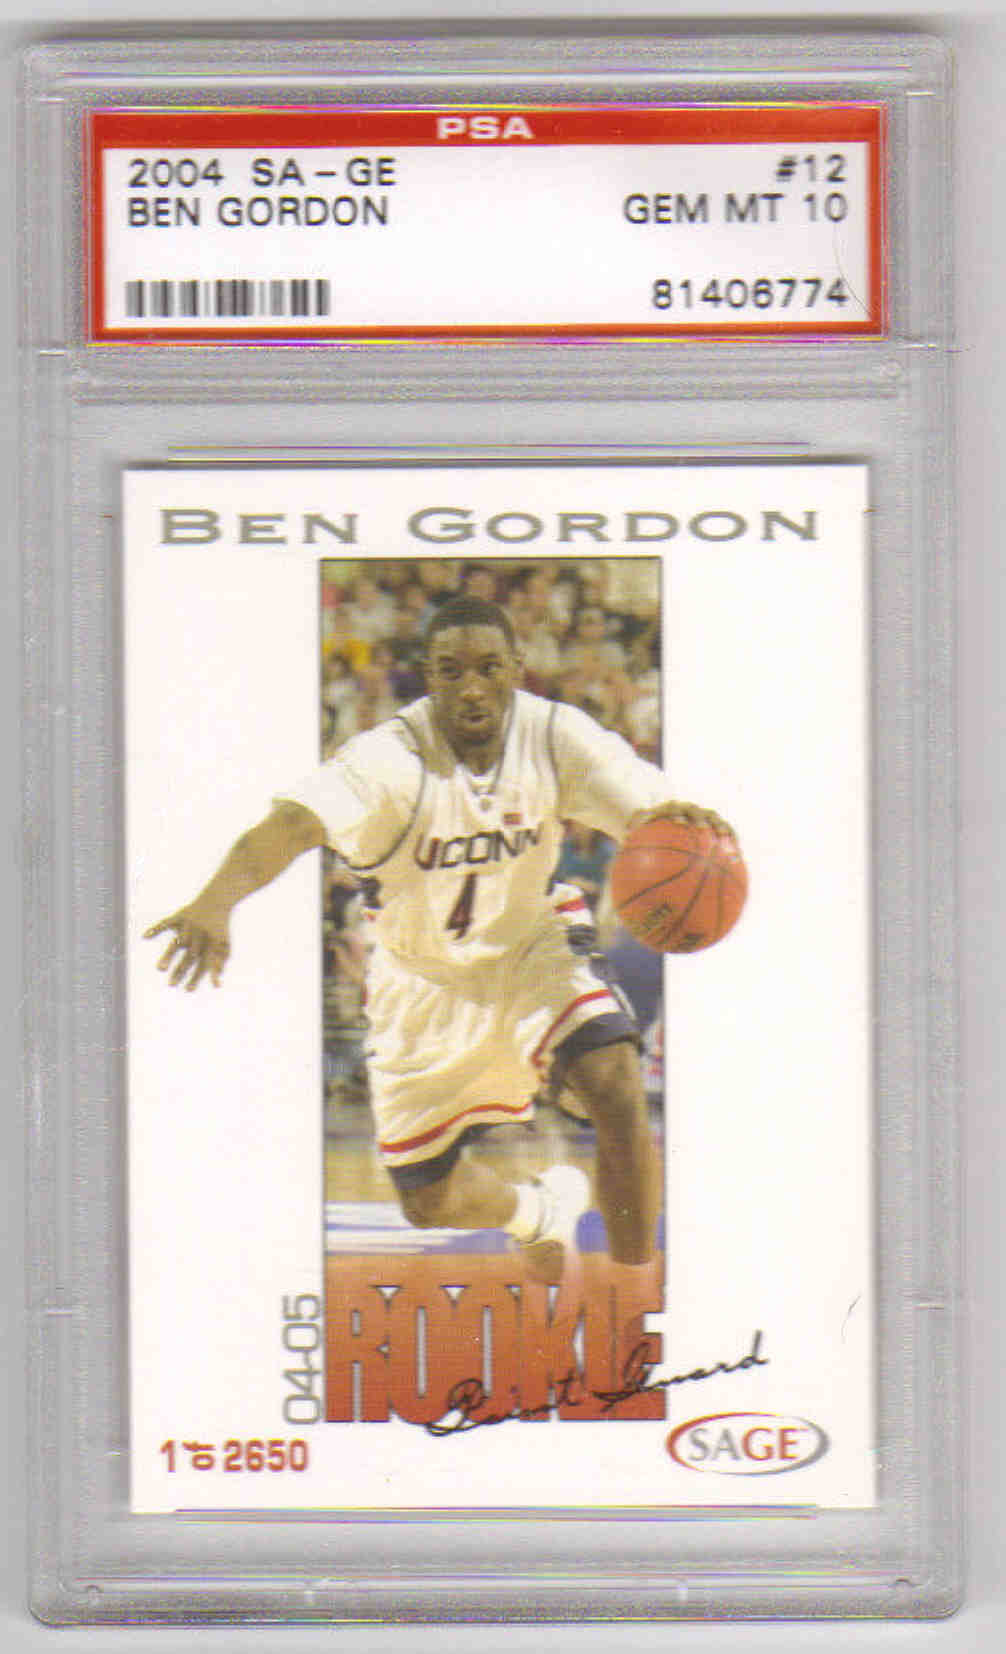 2004 SA-GE #12 Ben Gordon PSA 10 Gem Mint